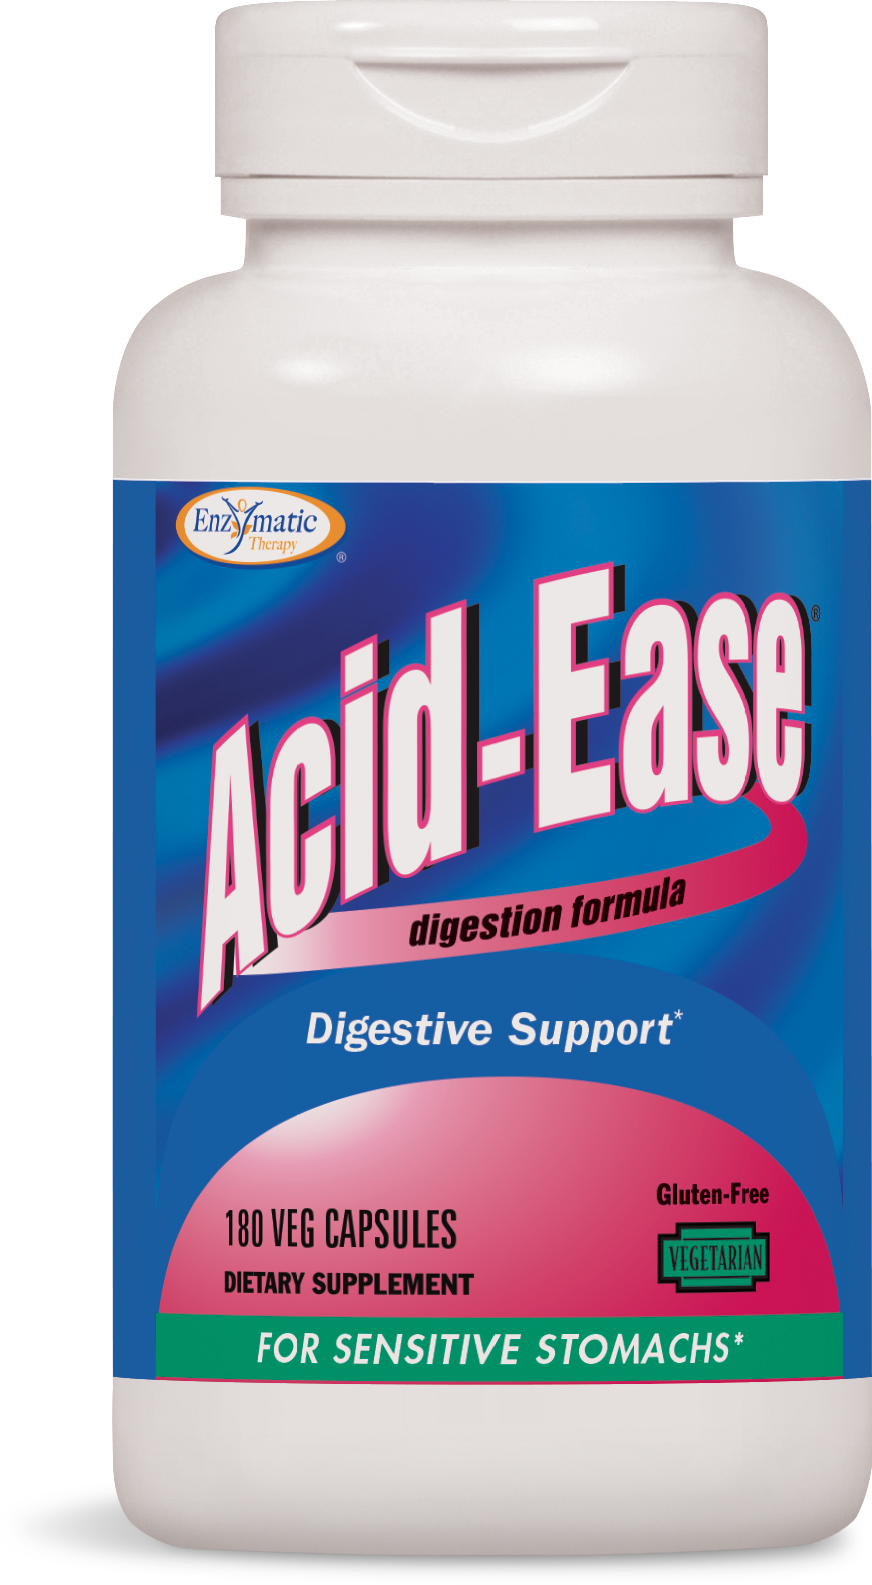 Acid-Ease Digestion Formula 180 Veg caps by Enzymatic Therapy